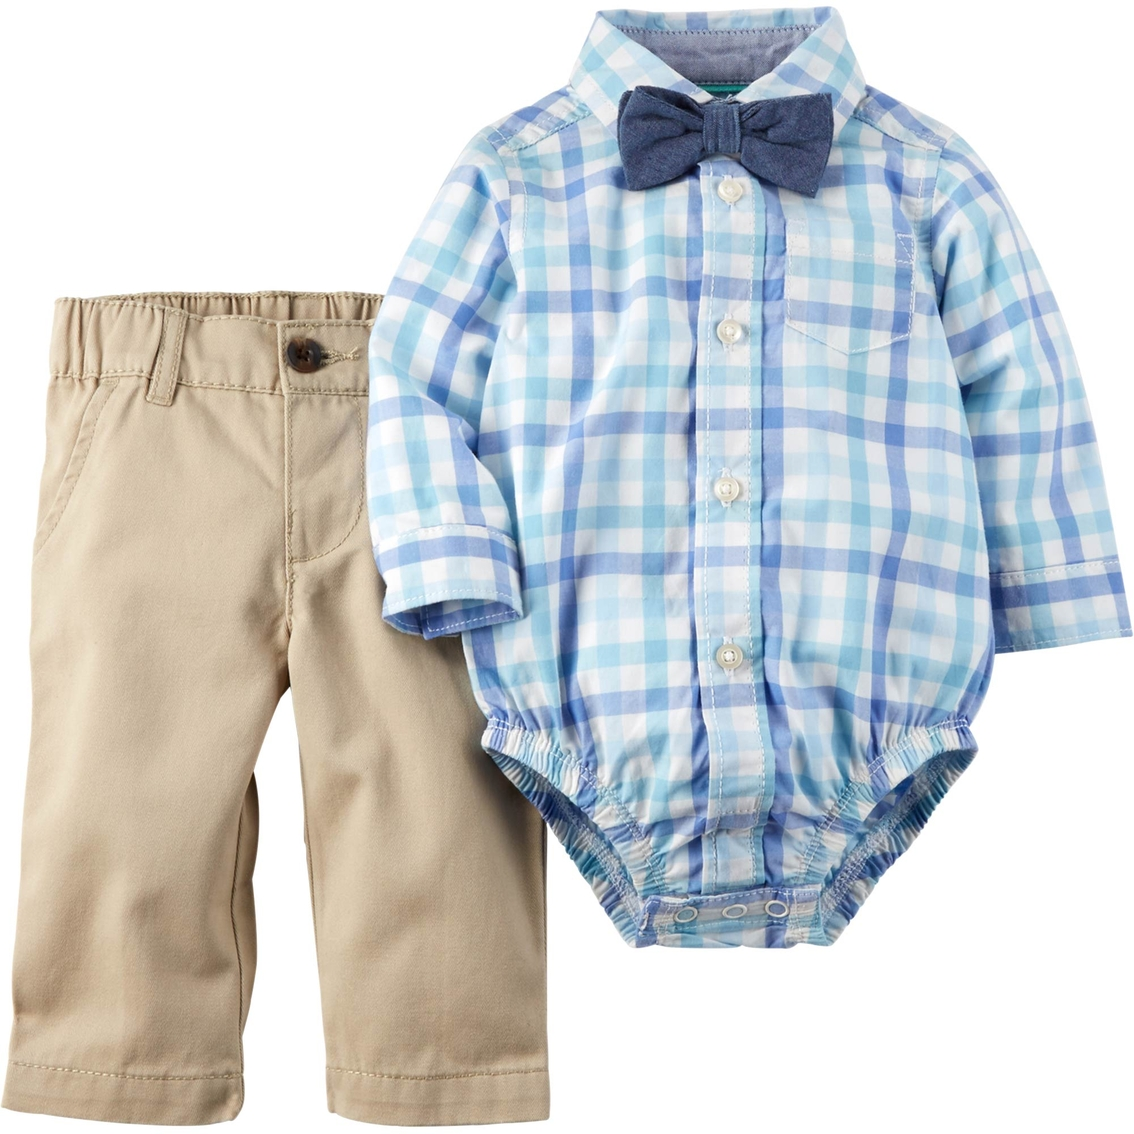 c3ba34918 Carter's Infant Boys Easter Plaid 3 Pc. Shirt & Pants Set | Baby Boy ...